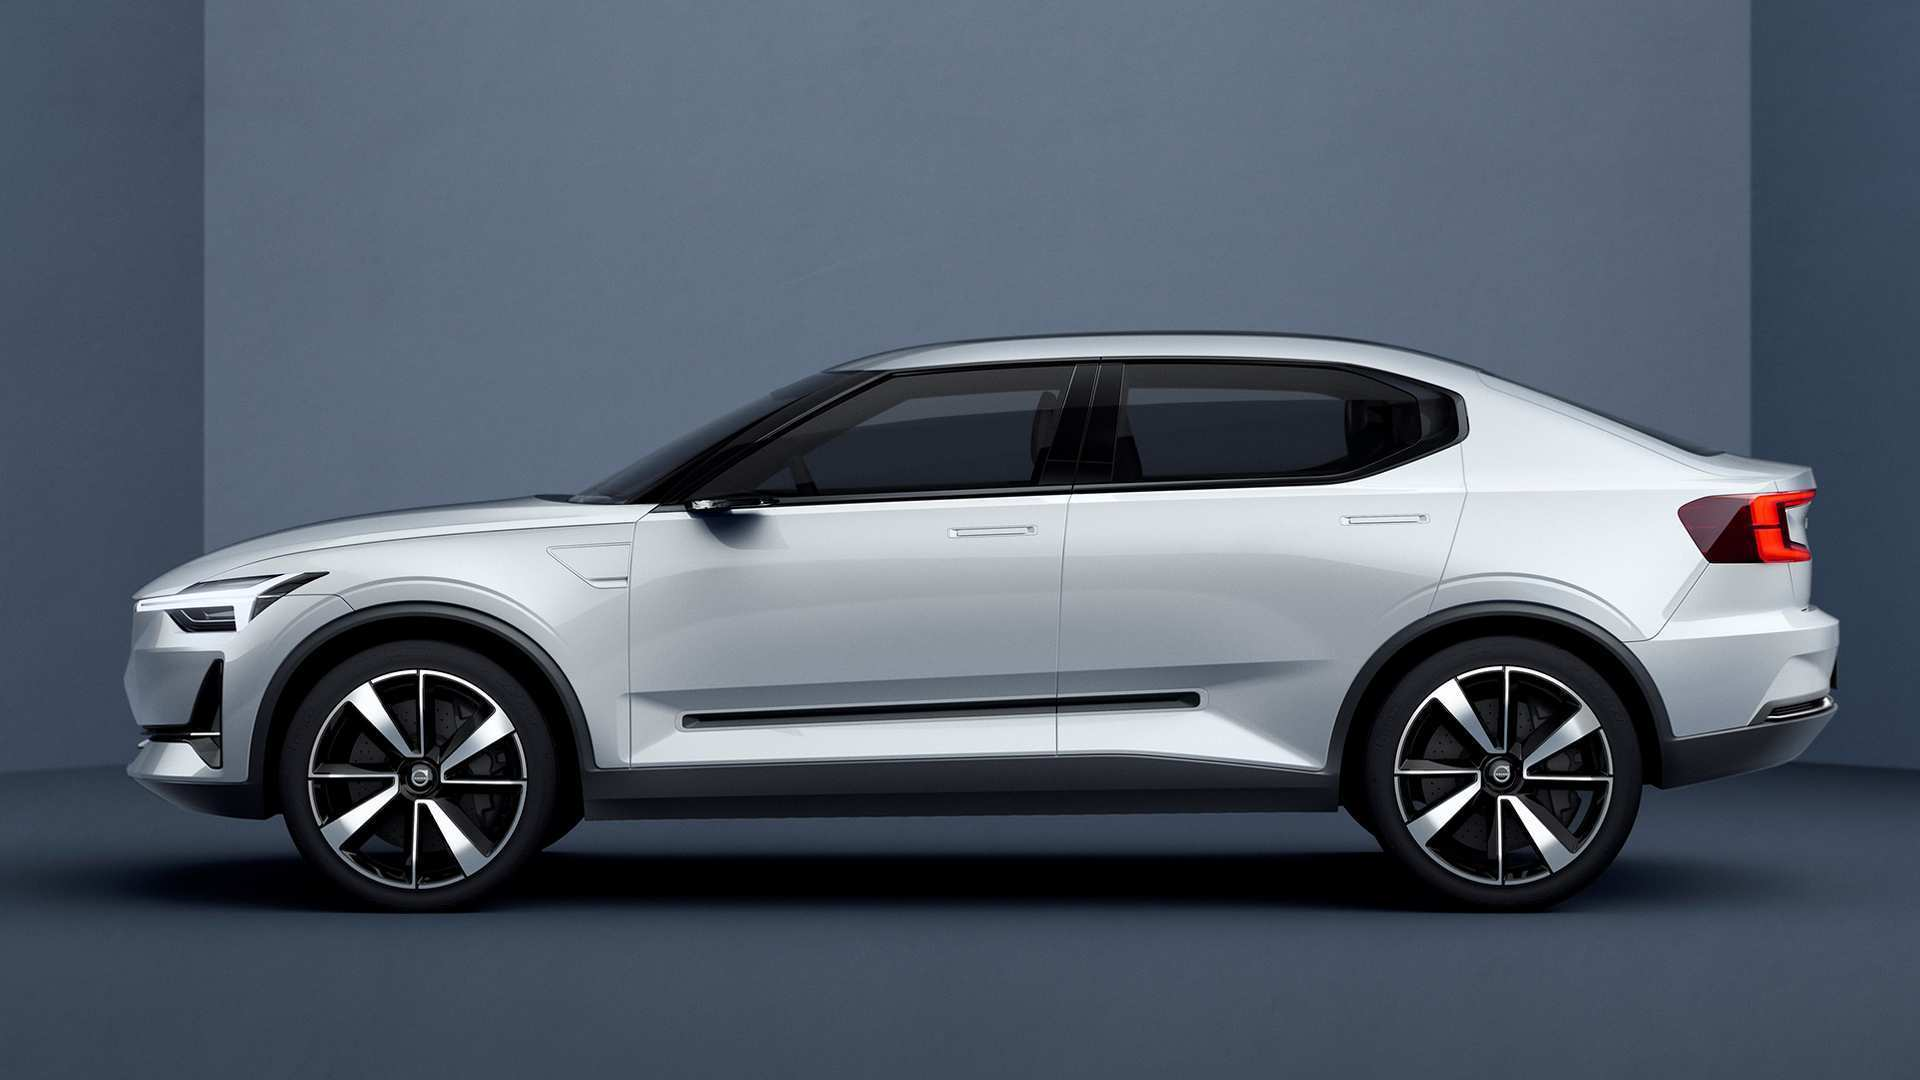 90 The 2020 Volvo Lineup Spy Shoot with 2020 Volvo Lineup